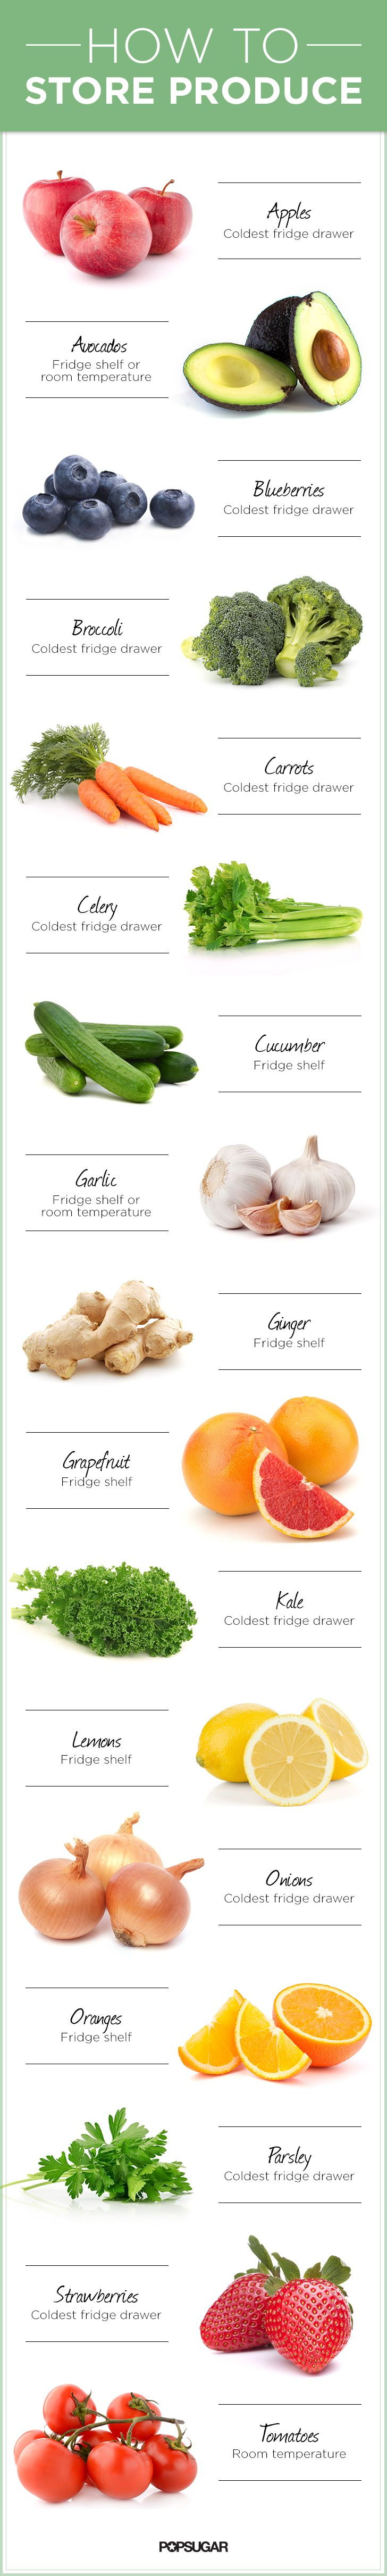 Optimize the Freshness of Your Produce by Storing It Right